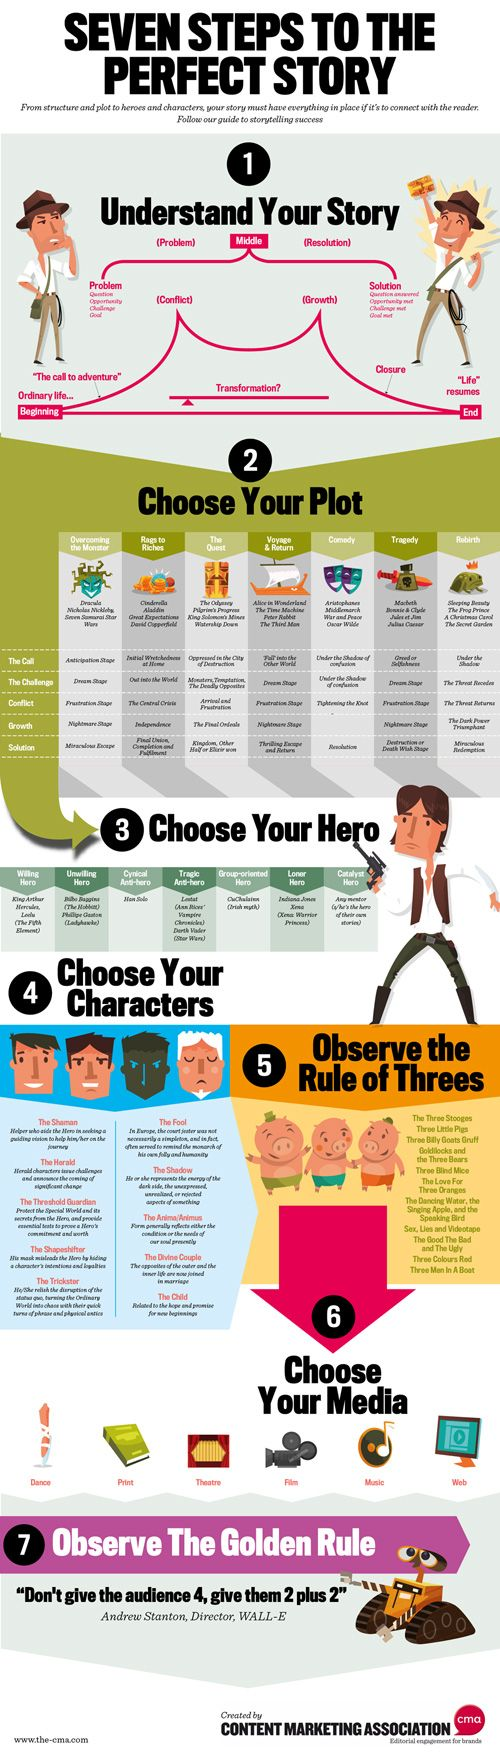 SEVEN STEPS TO THE PERFECT STORY. It looks kind of child like but actually when you think about it, some good tips here.